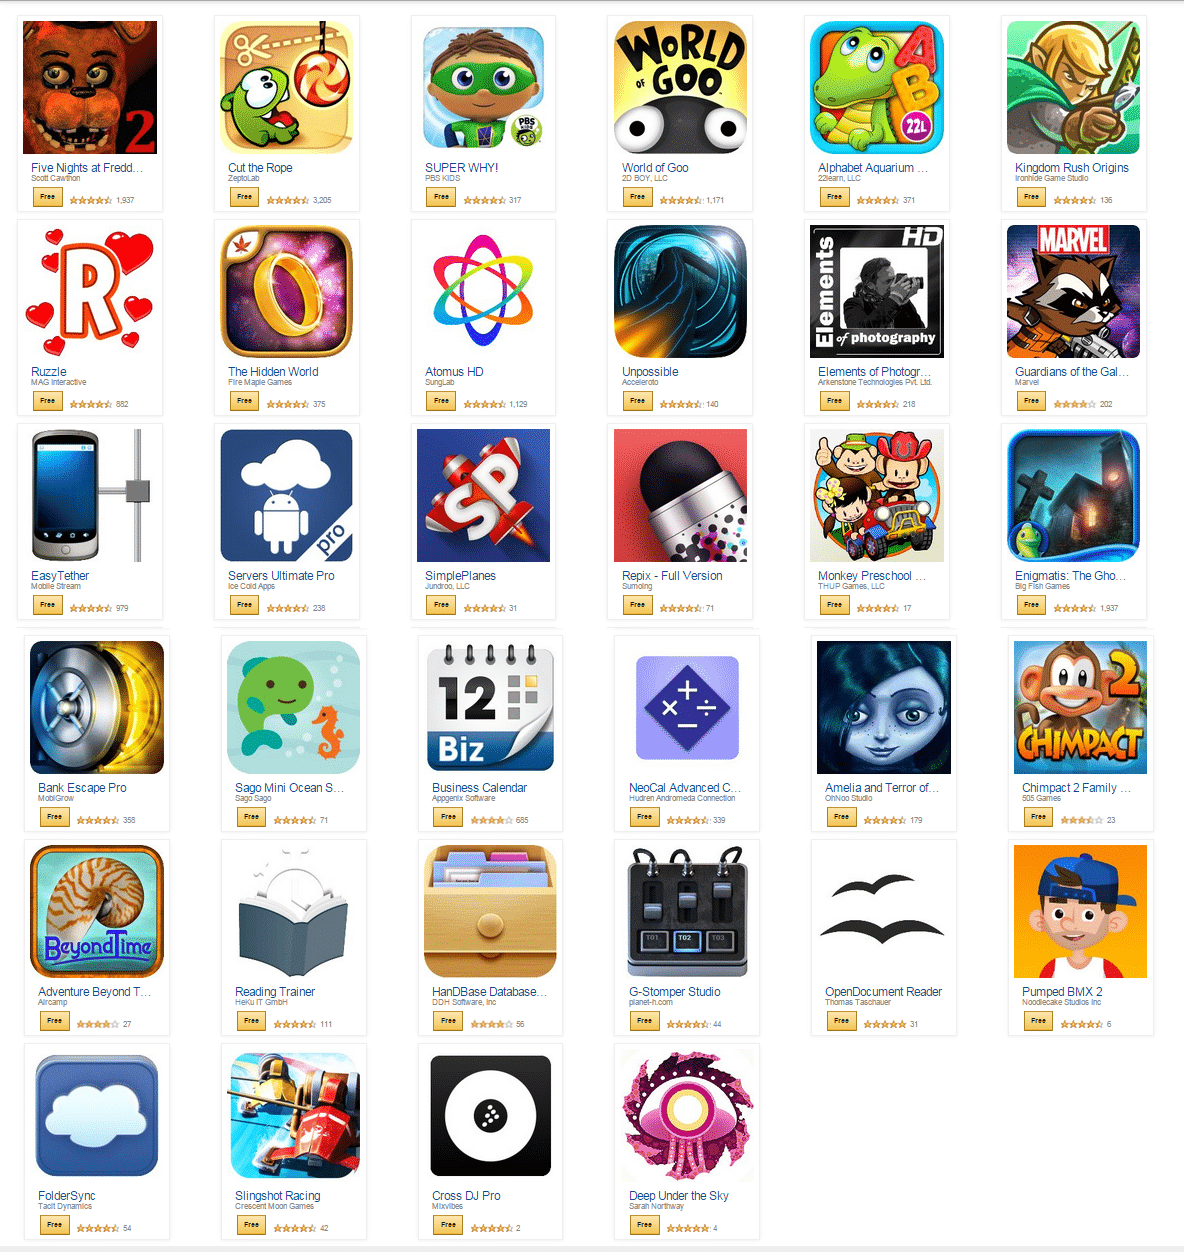 Download Android app for Free from Amazon's Free Giveaway